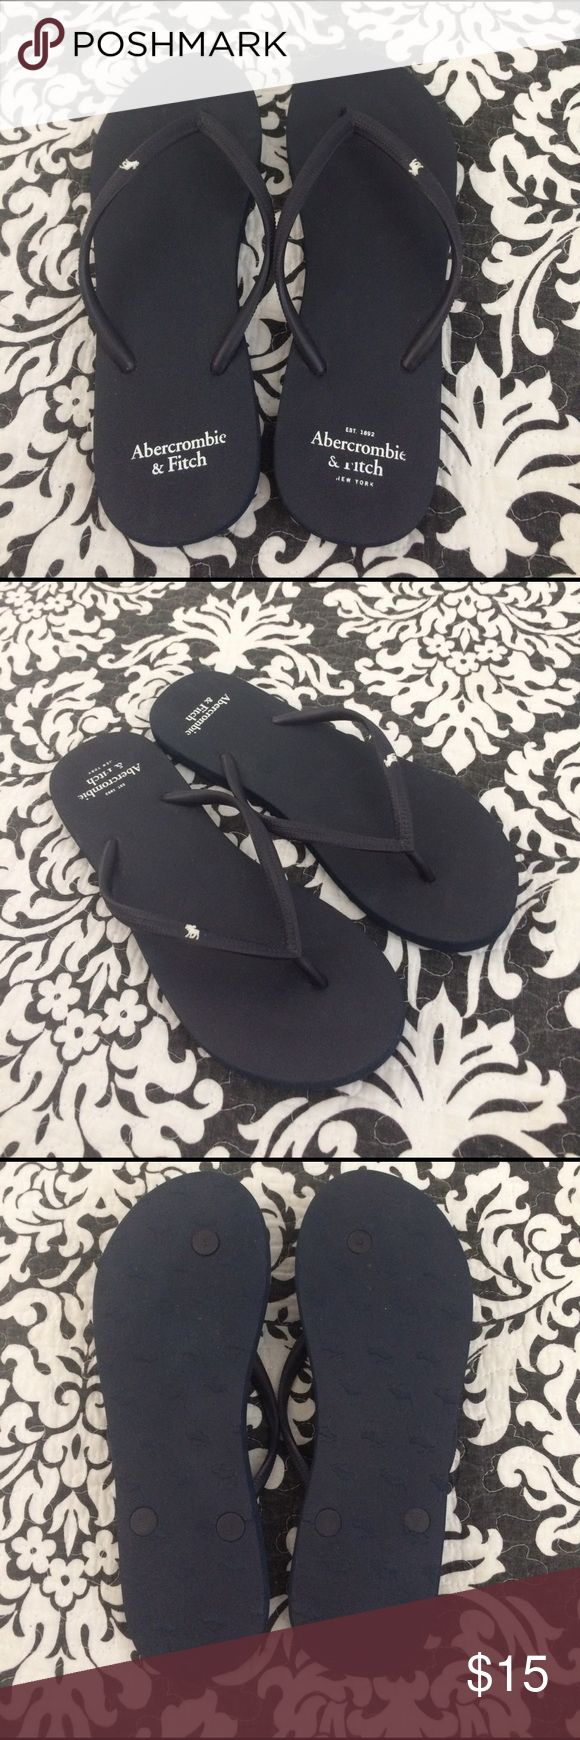 A&F Navy Flip Flops Comfortable flip flops with a solid coloring throughout, flexible straps, logo accent. Worn once in perfect condition. Abercrombie & Fitch Shoes Sandals